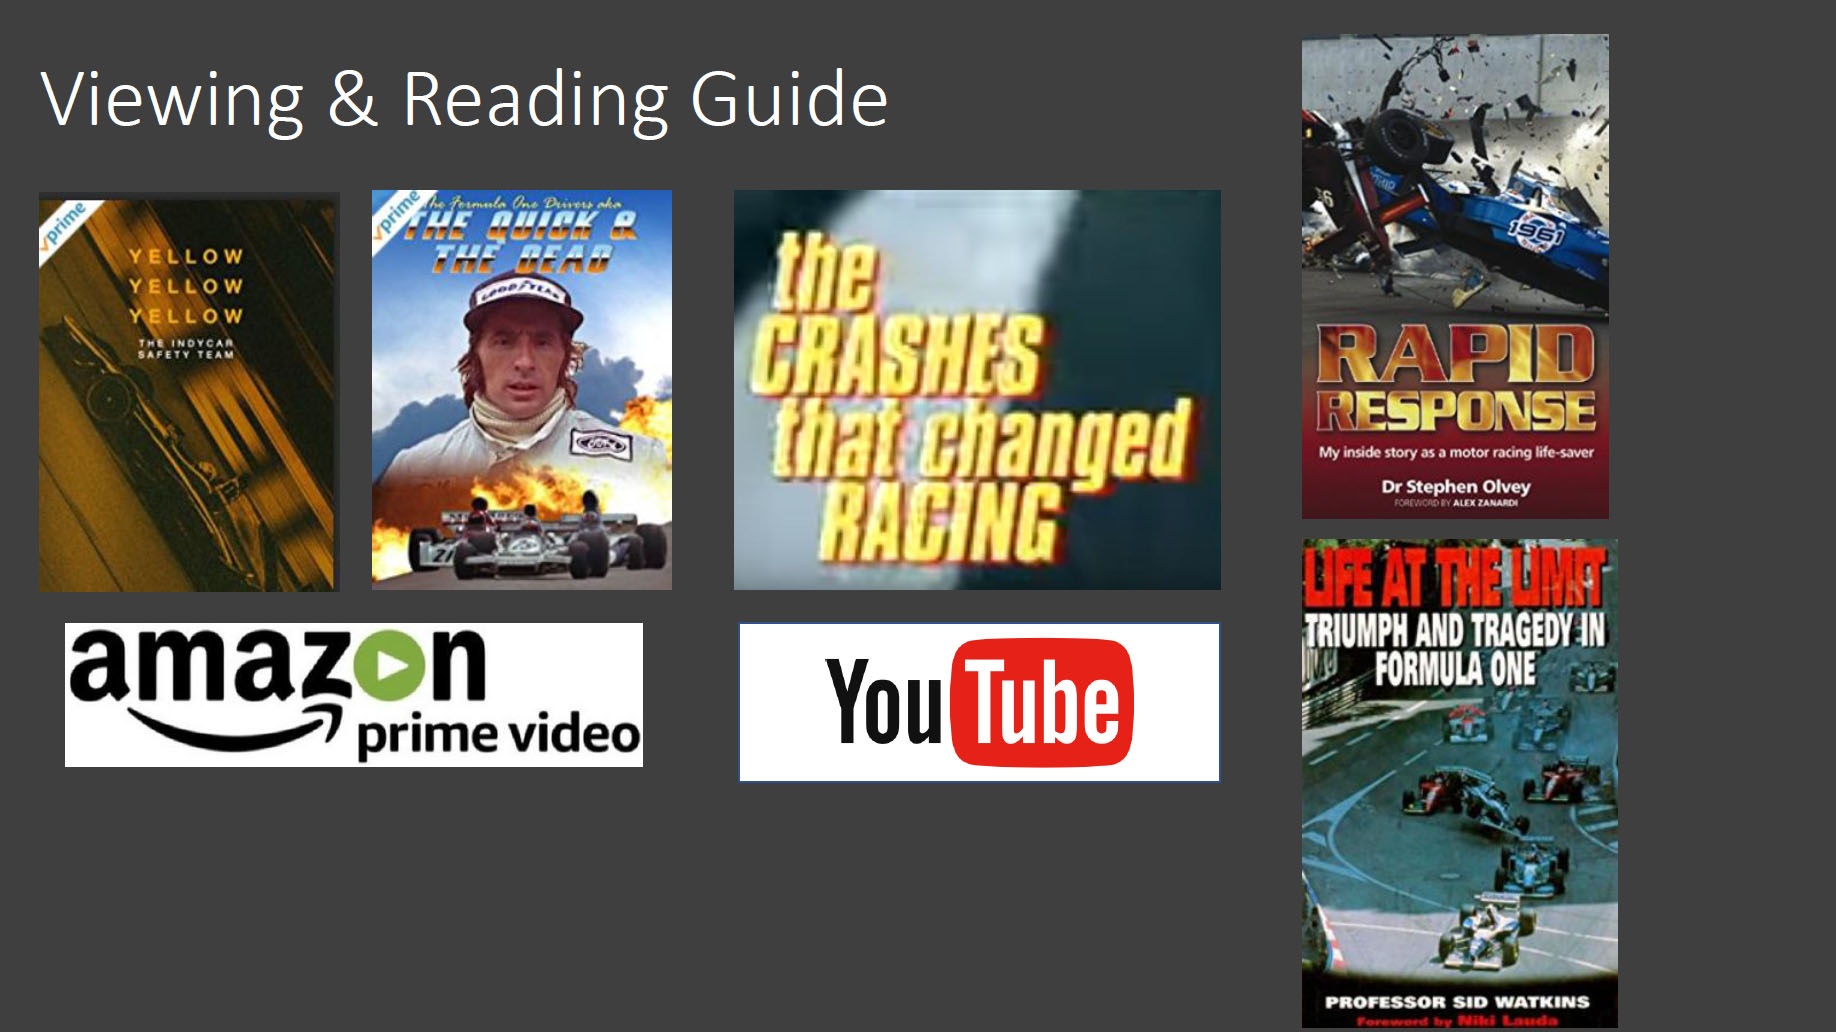 viewing and reading guide